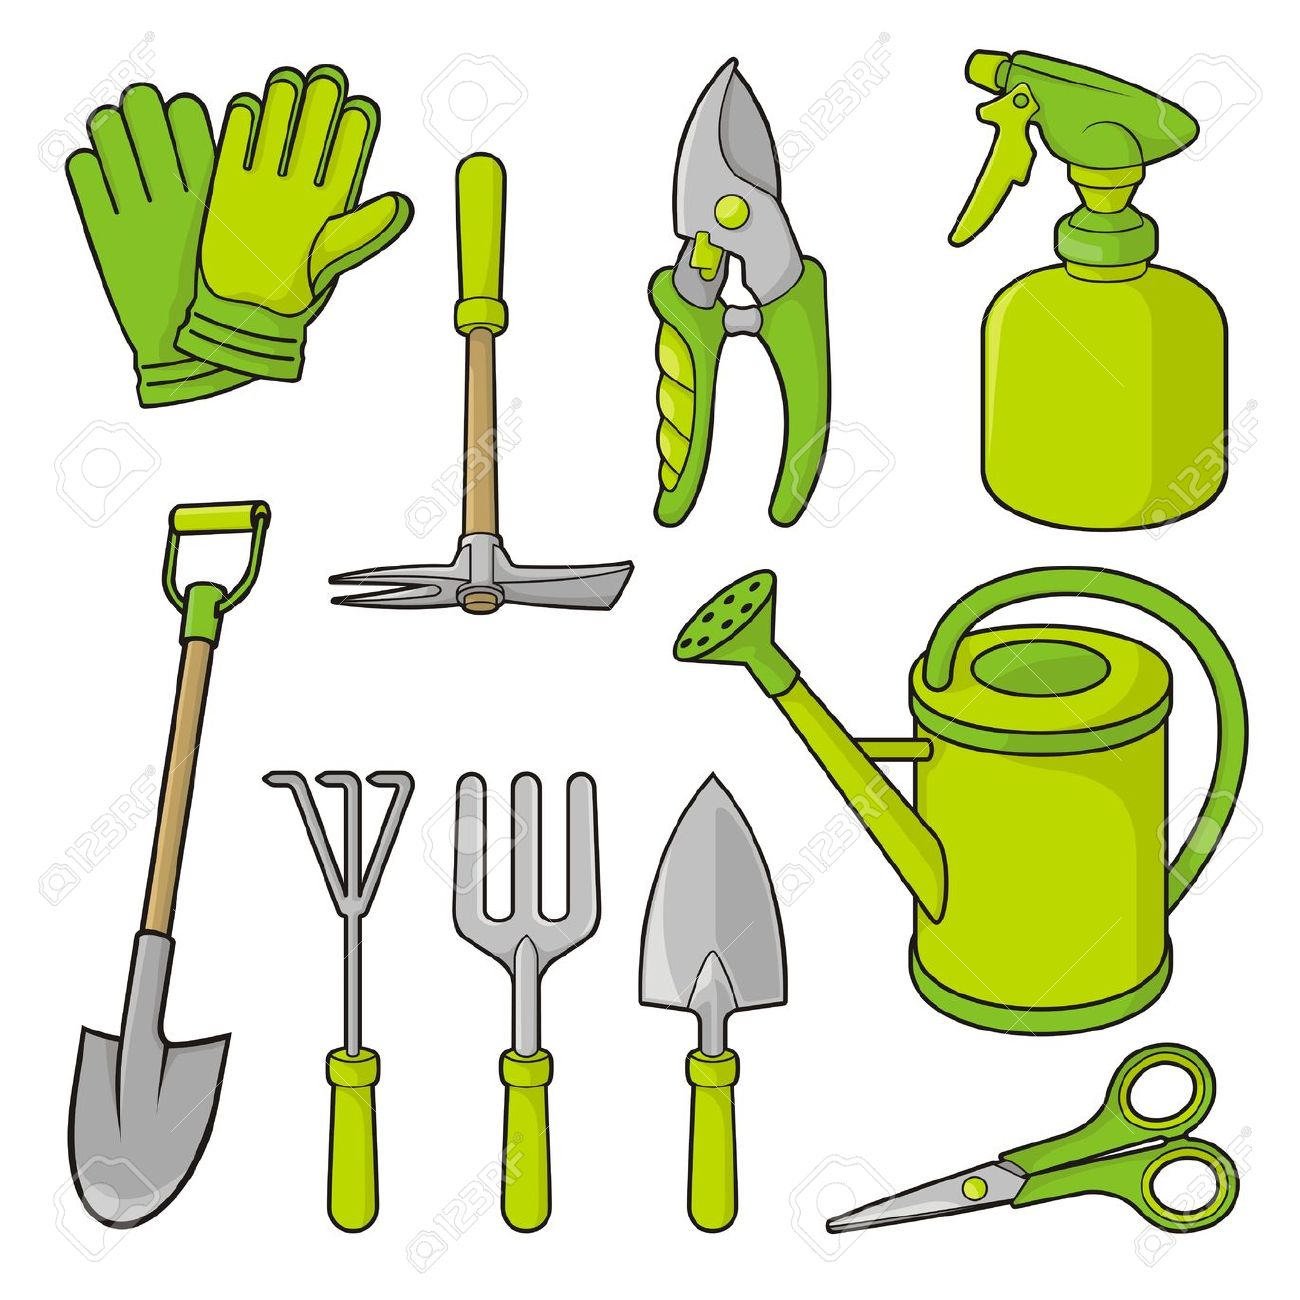 home design ideas garden tools clipart ForGardening Tools Clipart